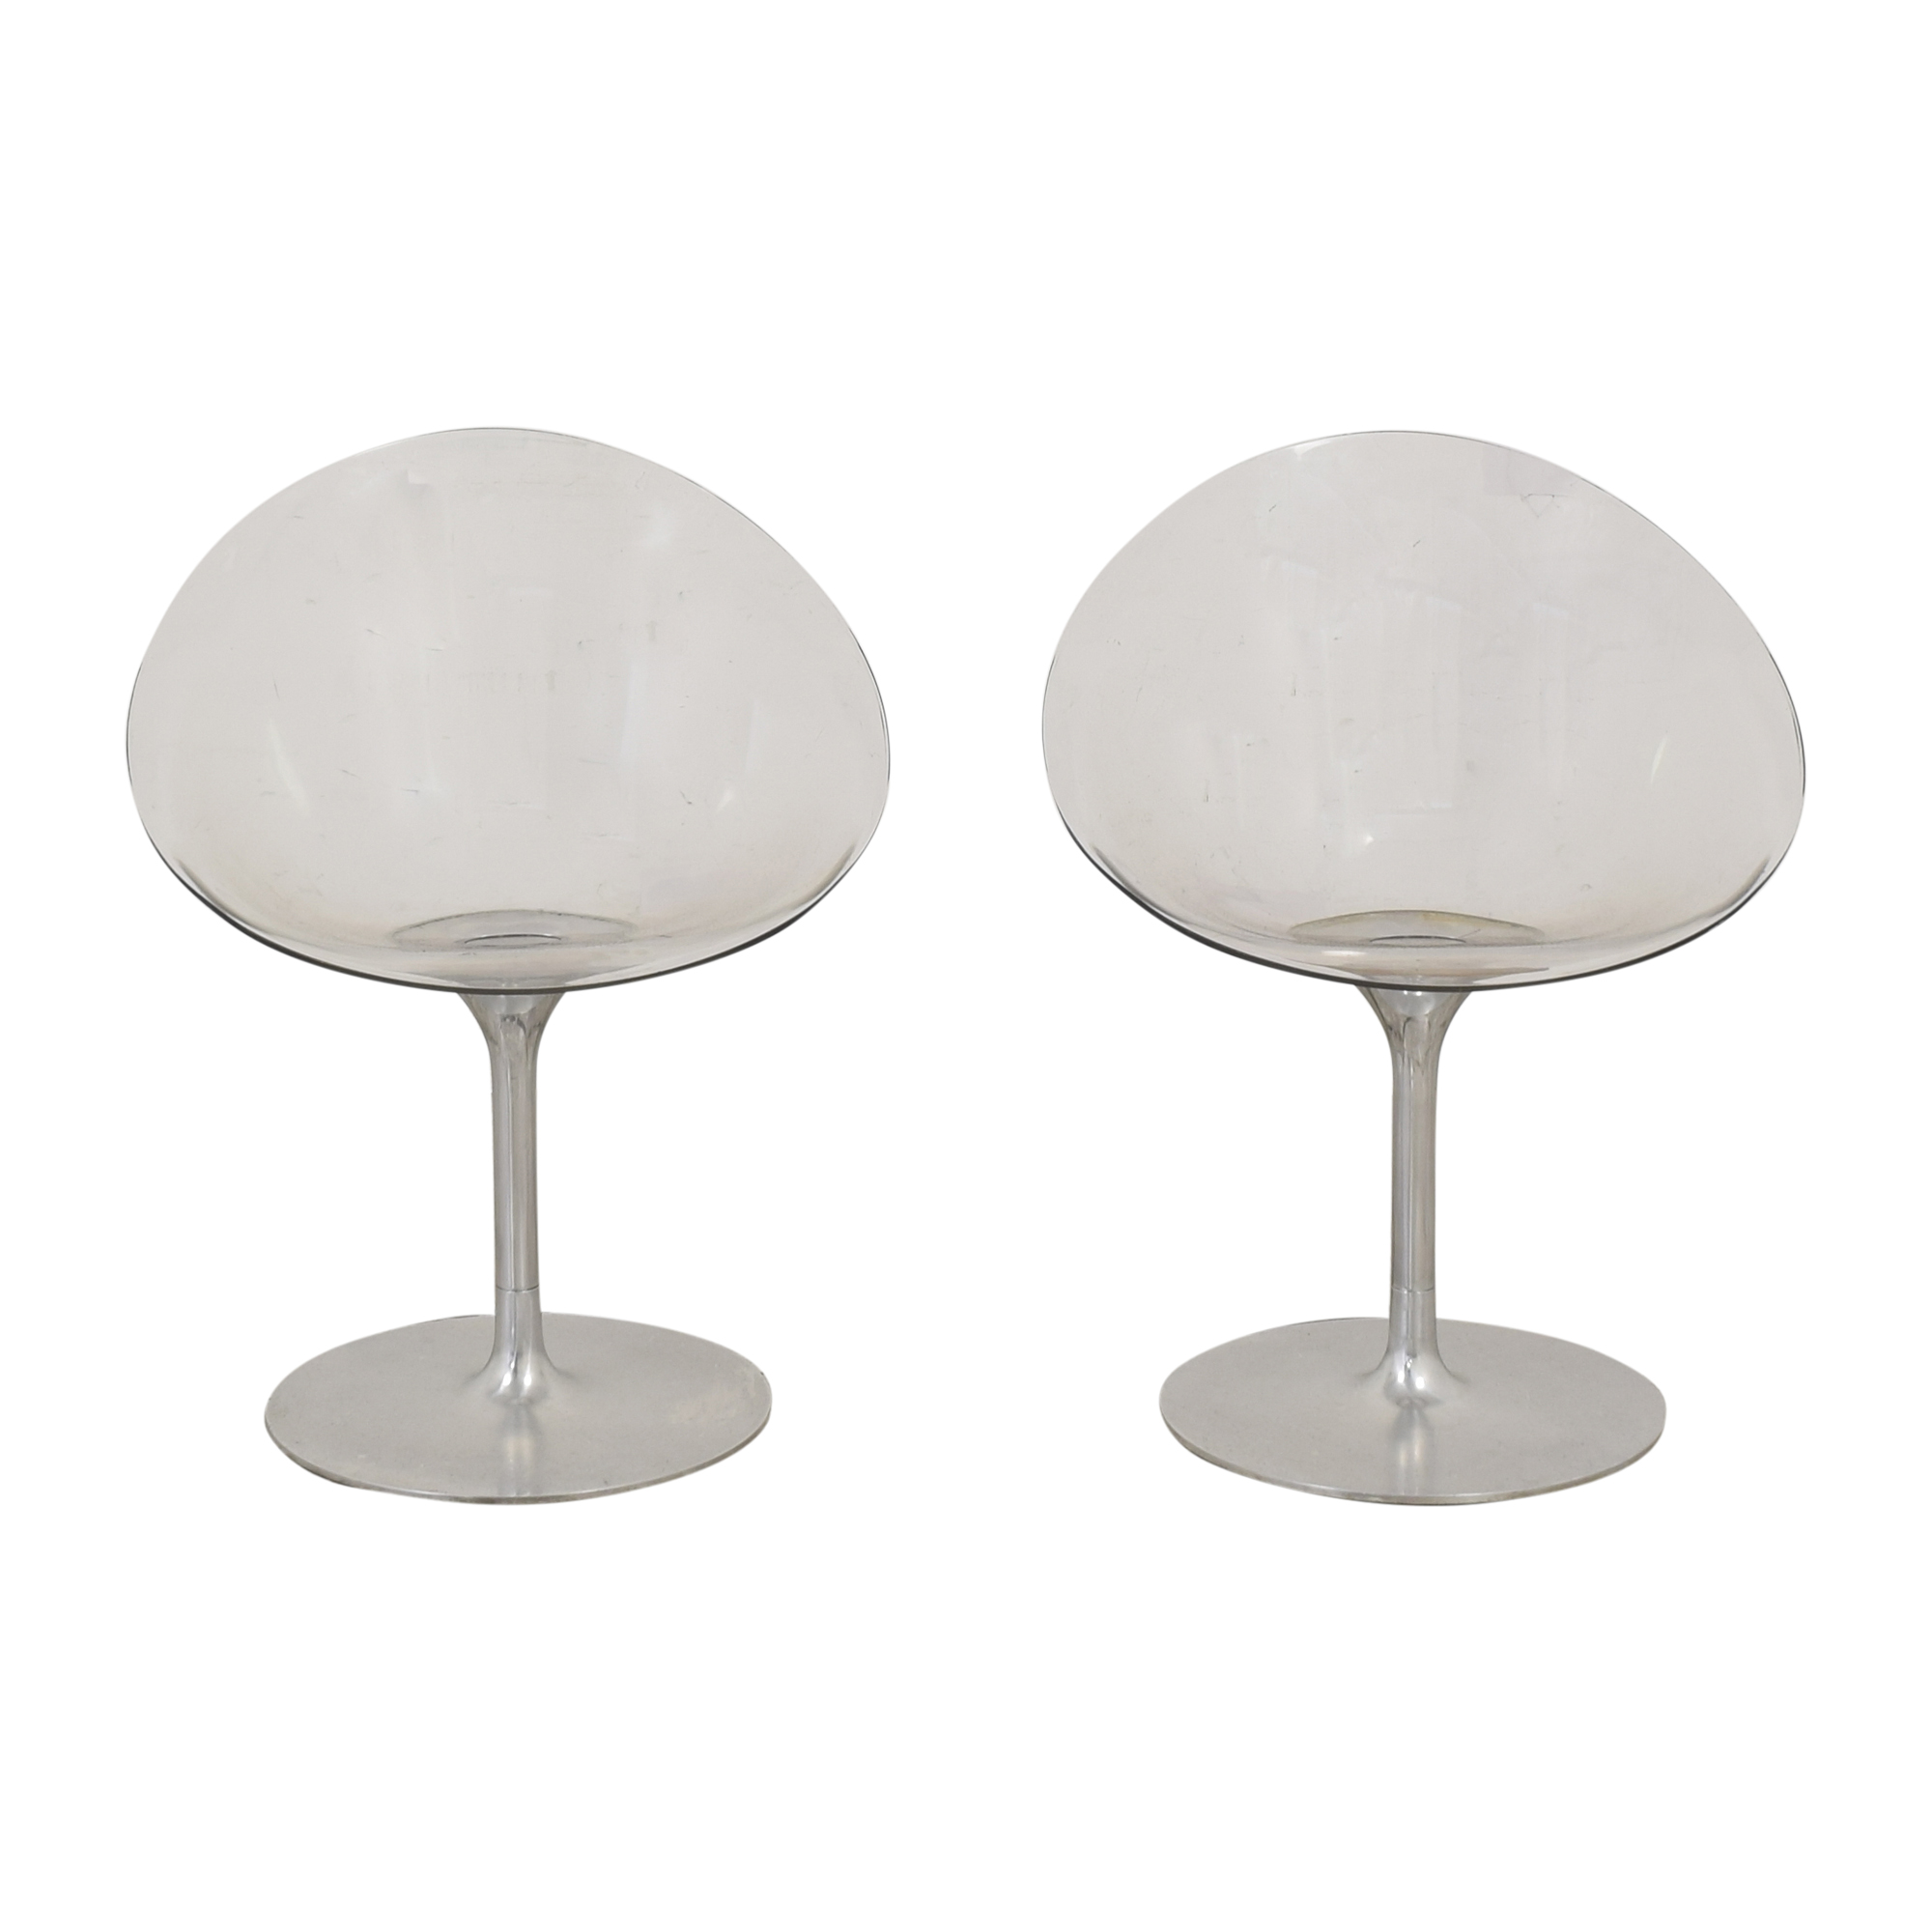 Kartell Kartell by Philippe Starck Ero|s| Swivel Chairs clear and silver